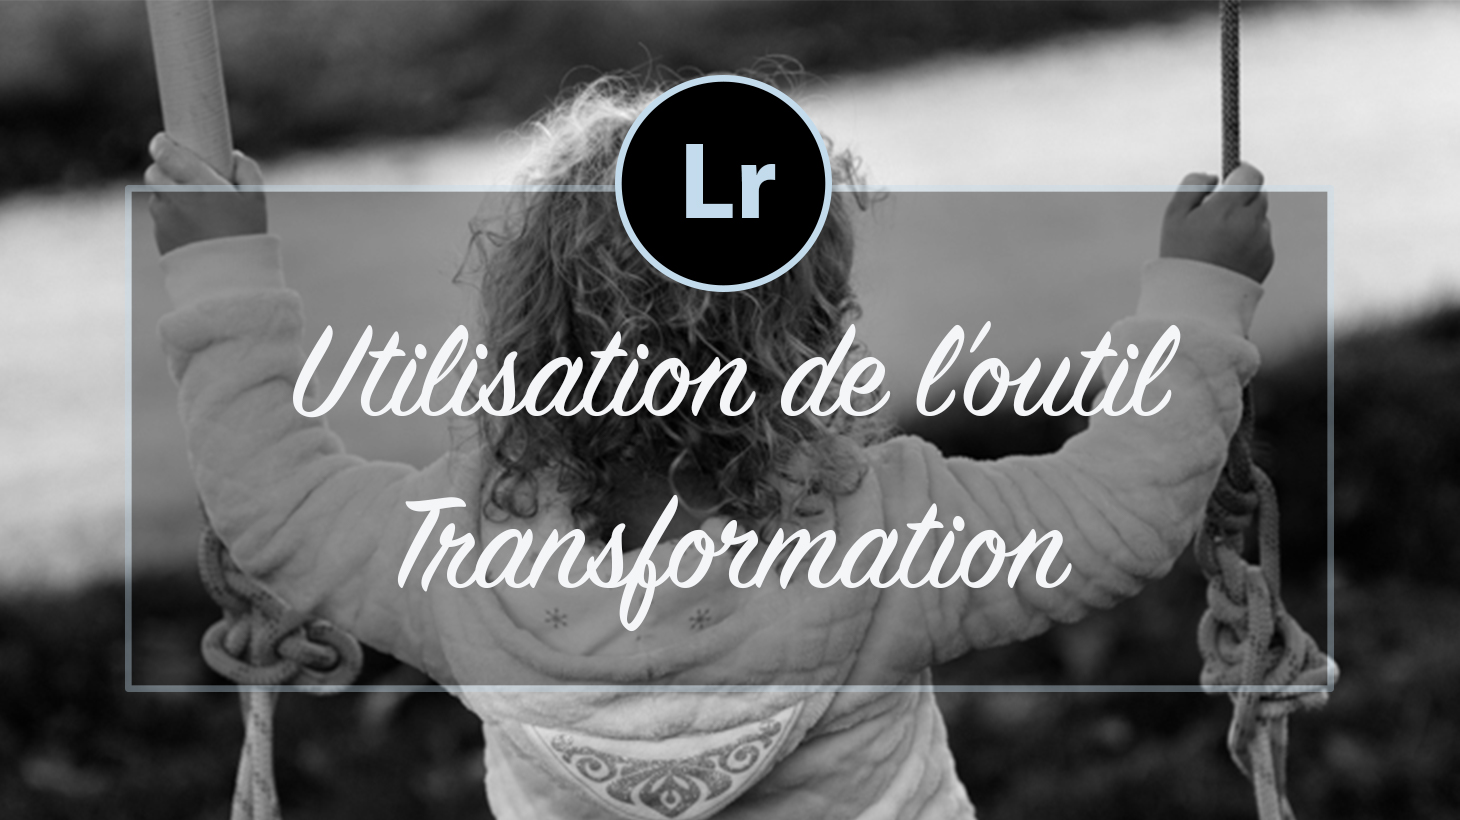 [VIDEO] – Utilisation de l'outil Transformation Lightroom